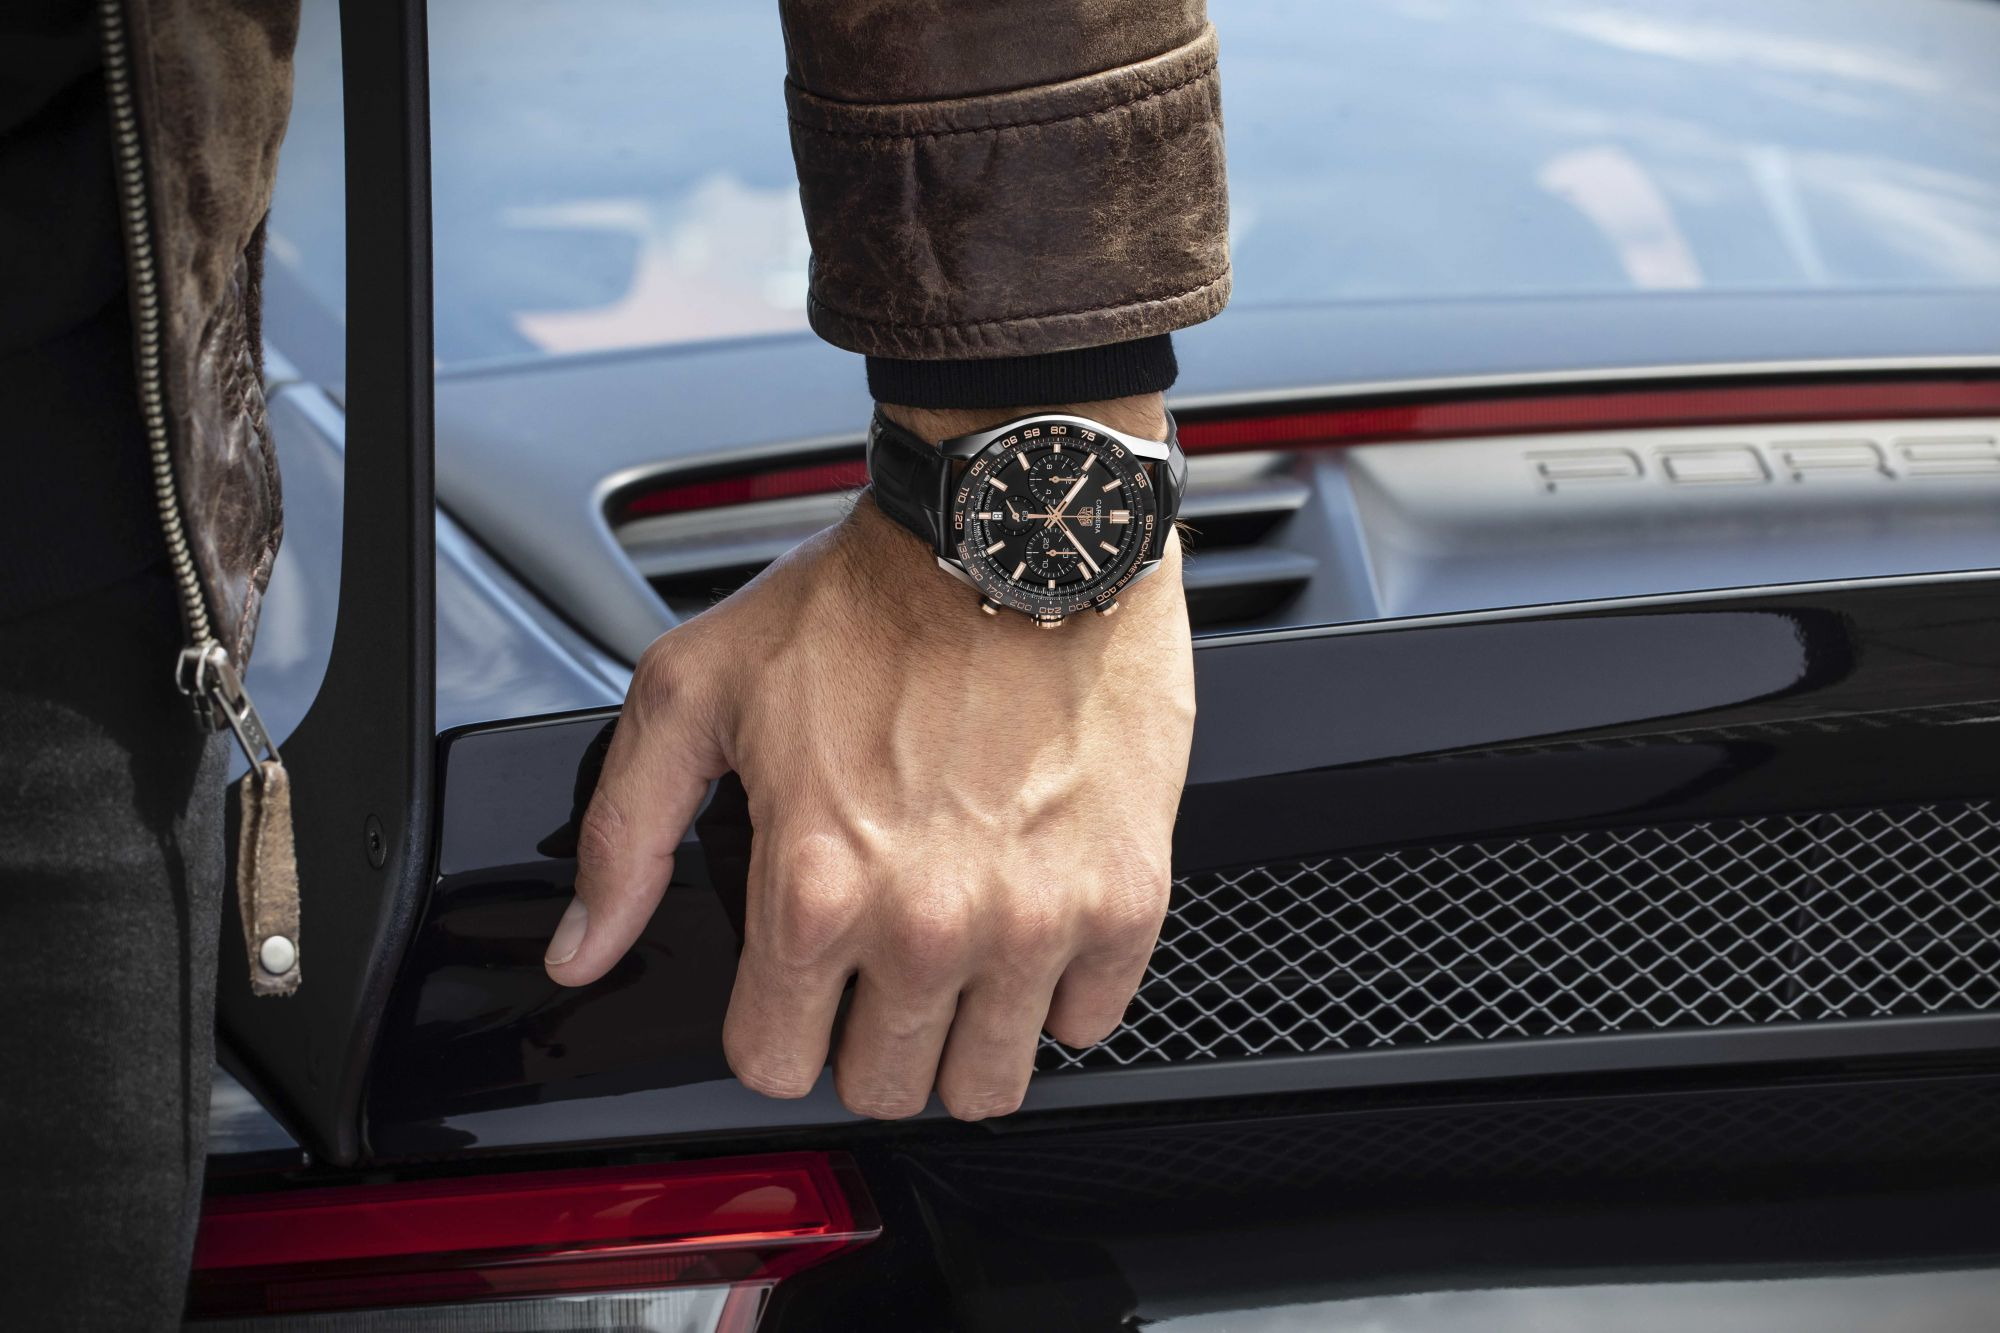 Jewels & Time 2020: The Tag Heuer Carrera Chronograph Gets Rebooted